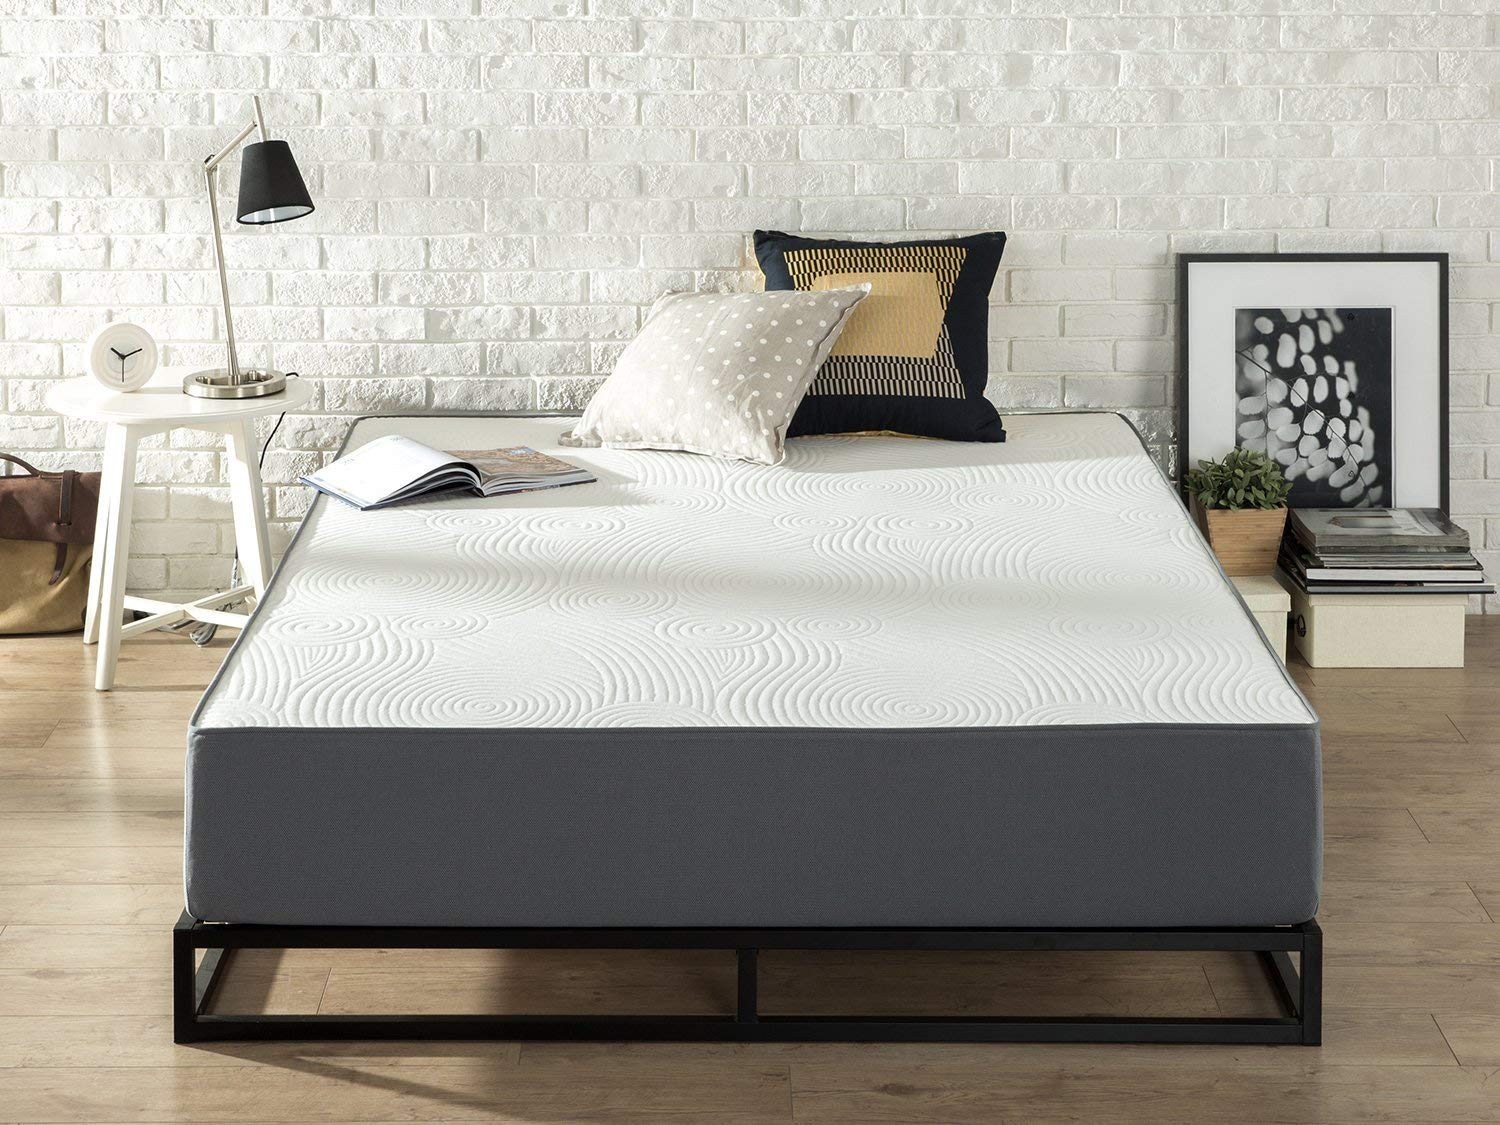 Zinus Viscolatex Best Mattress Under $500 Review by www.snoremagazine.com